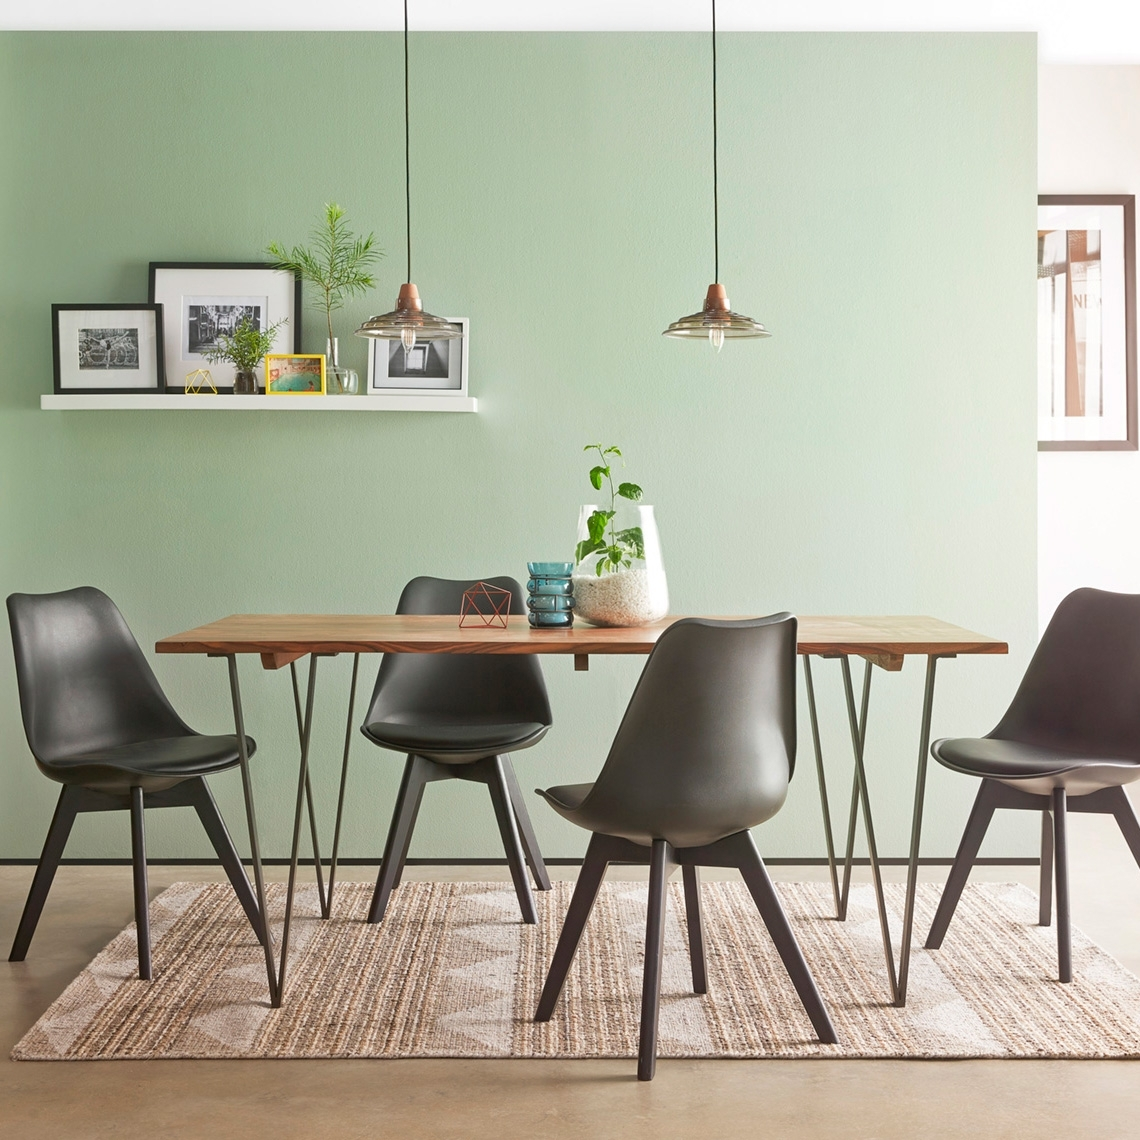 How To Find The Perfect Dining Table – Freedom Intended For Recent Wyatt Dining Tables (Photo 2 of 20)